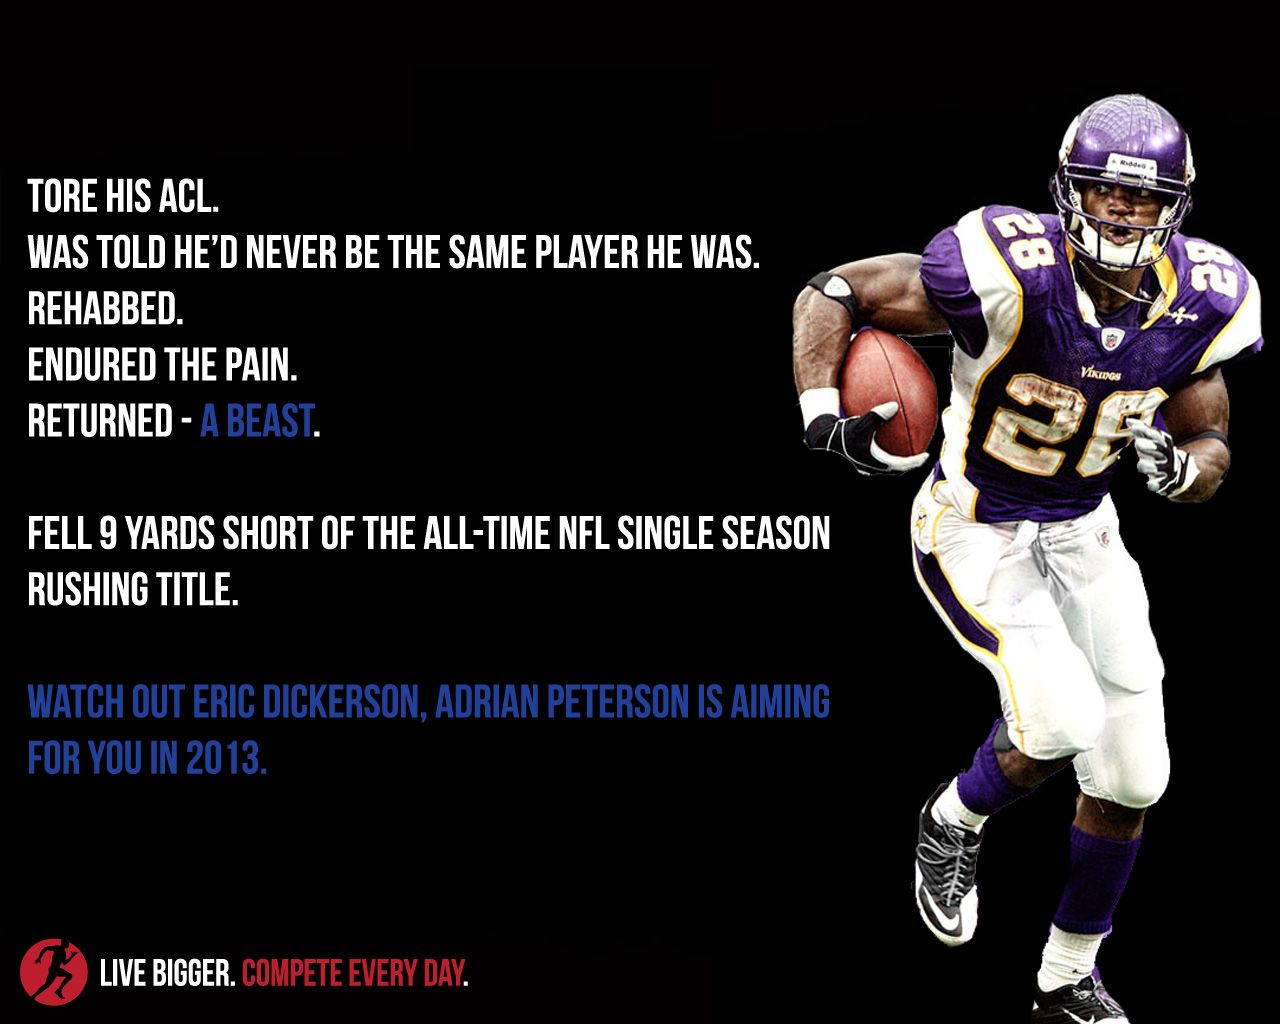 Adrian Peterson Set The Bar High For Recovery From An Acl Injury